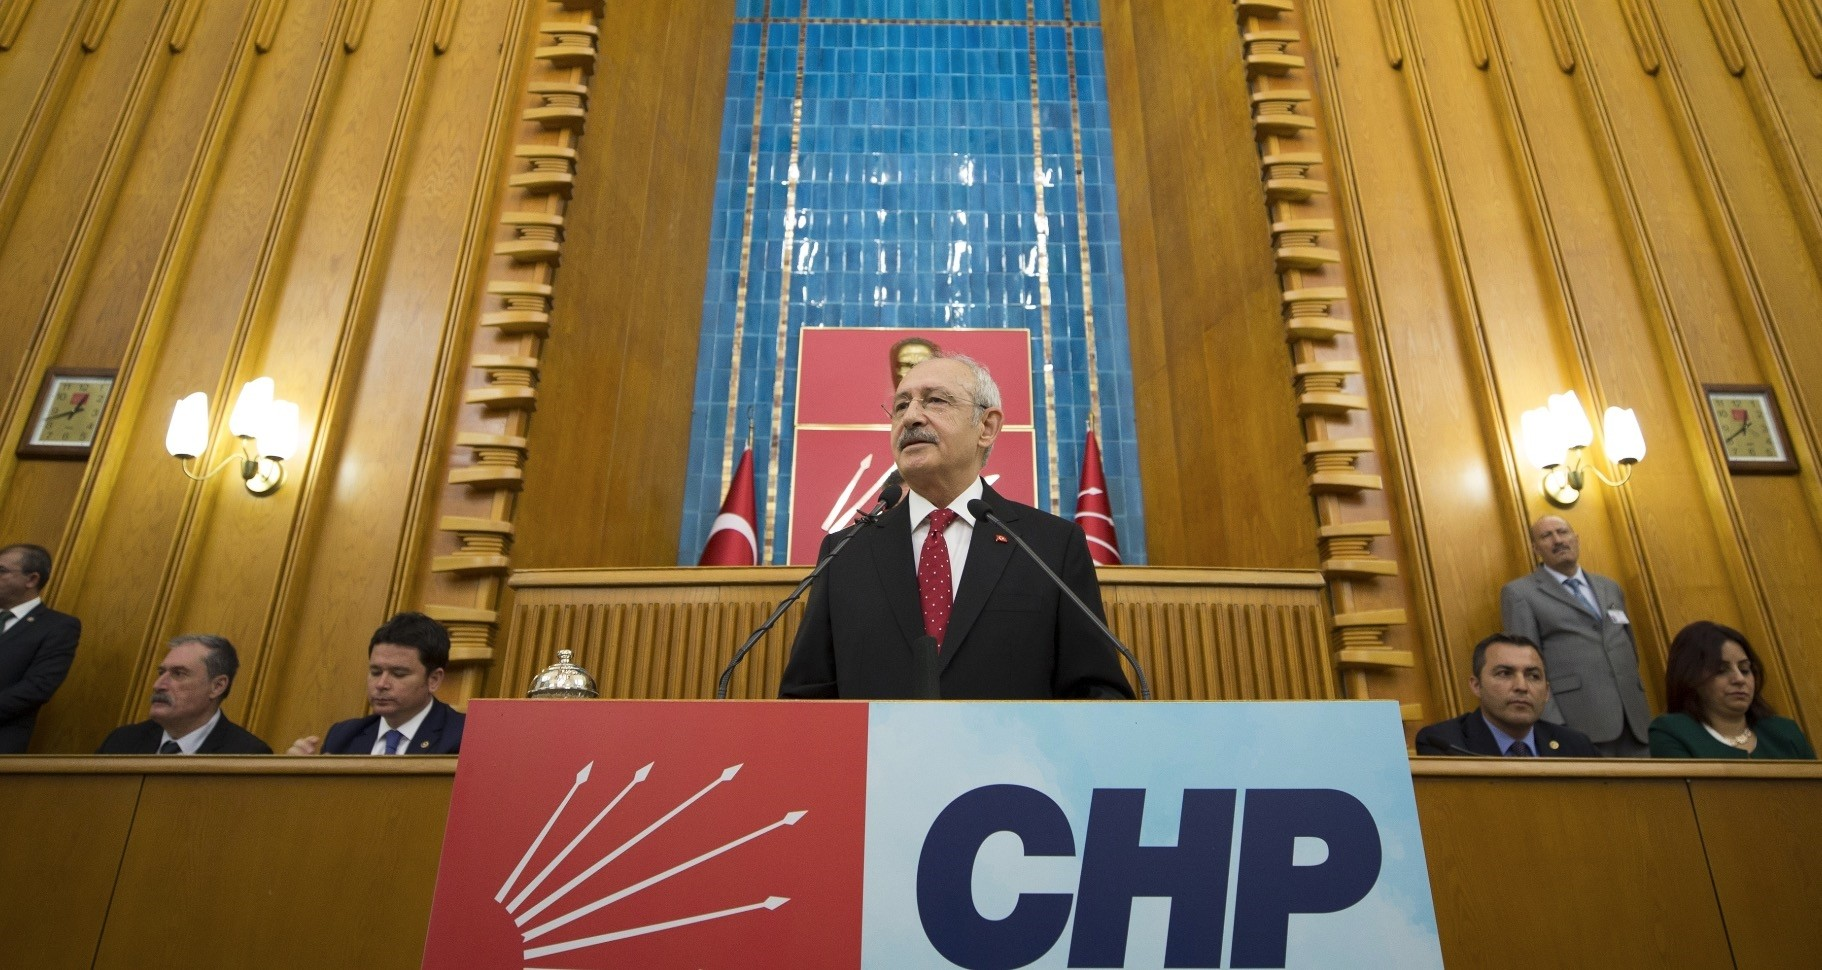 Opposition CHP Chairman Ku0131lu0131u00e7darou011flu delivers a speech at his party's group meeting at the party's headquarters in Ankara.